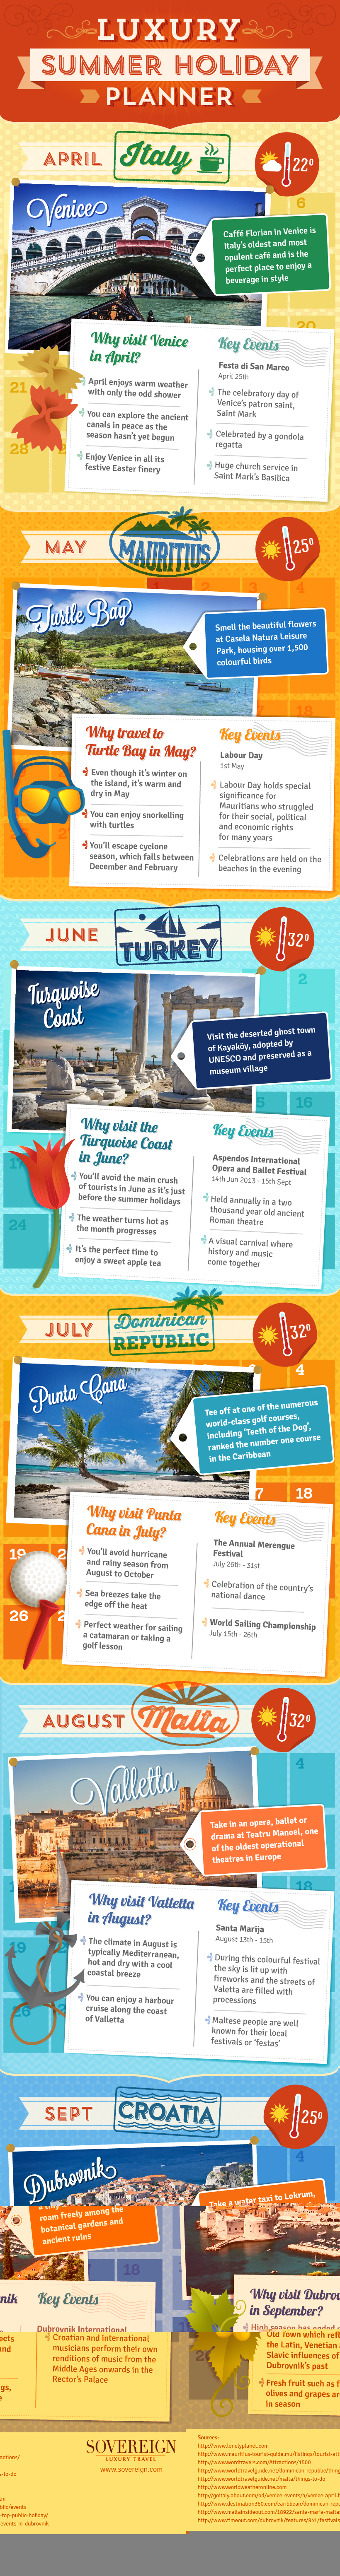 Luxury  Holiday Planner - Sovereign [infographic]